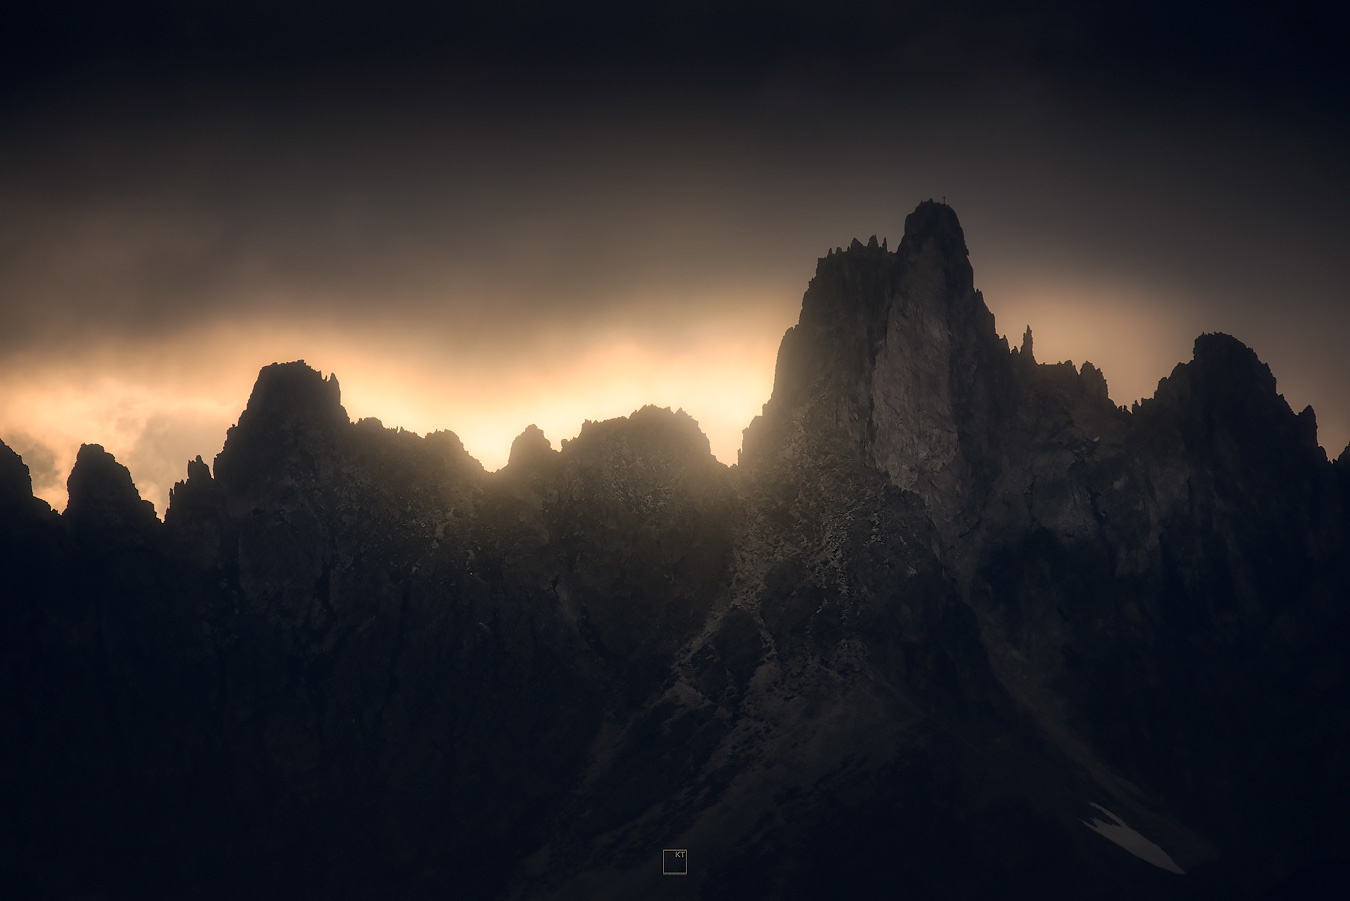 Moods of the mountain by Kevin Teerlynck